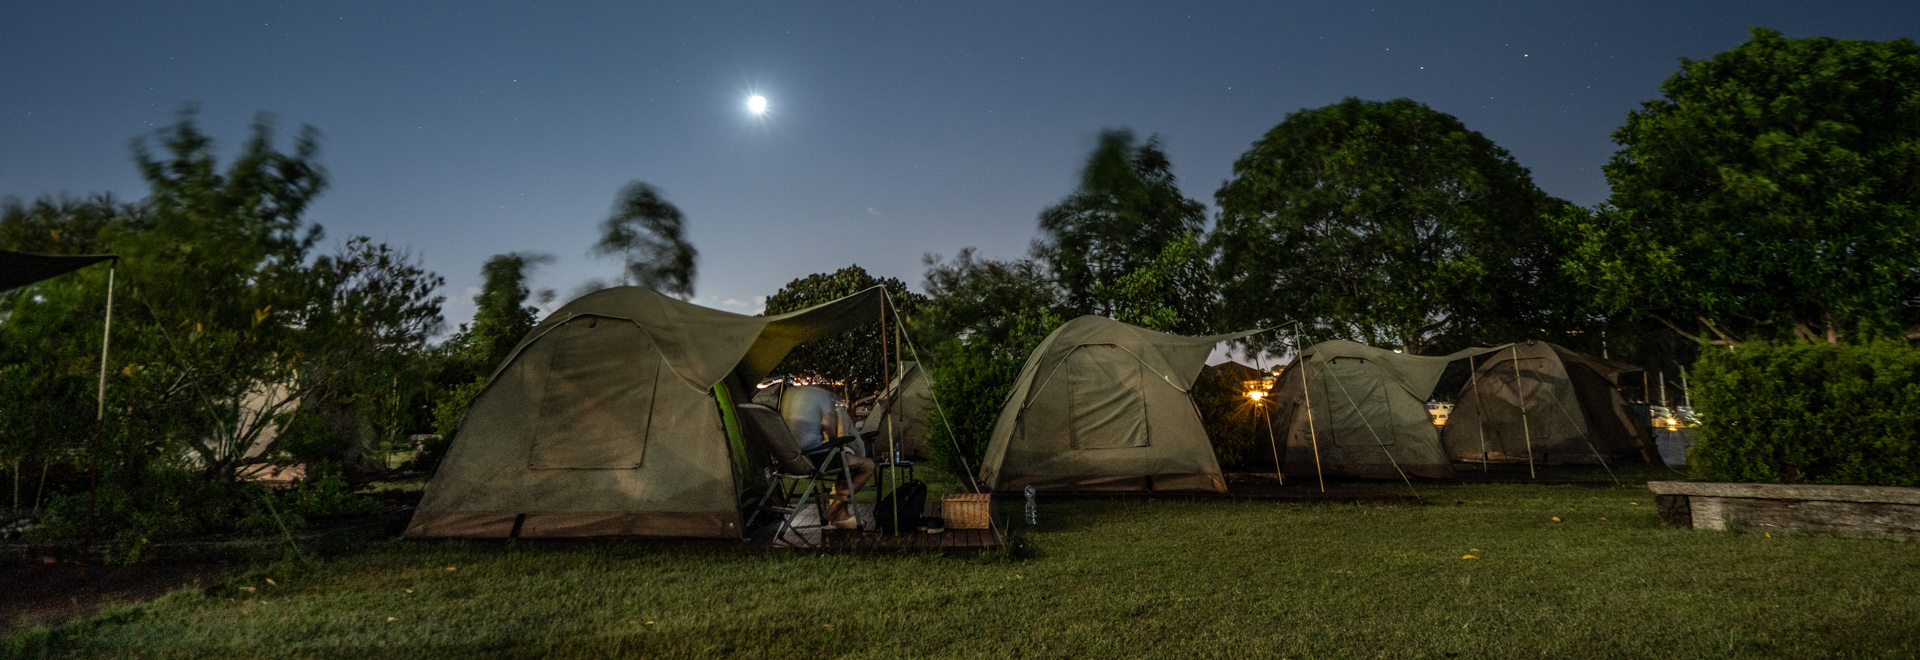 Full-width_Campground_01.jpg